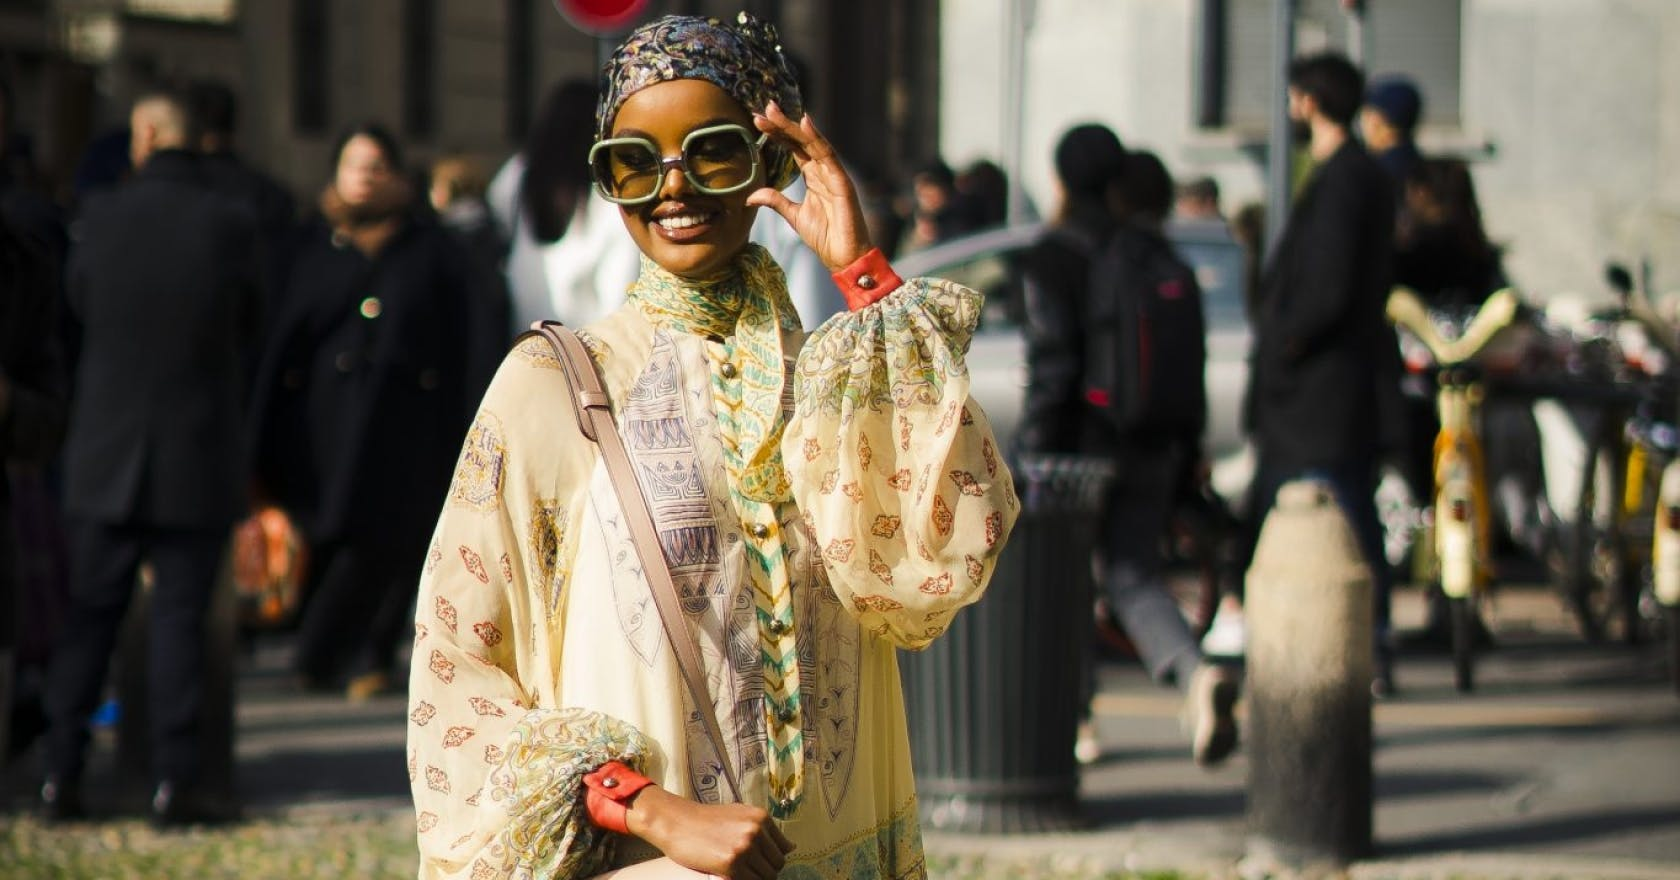 9 joyful street style moments to brighten your day